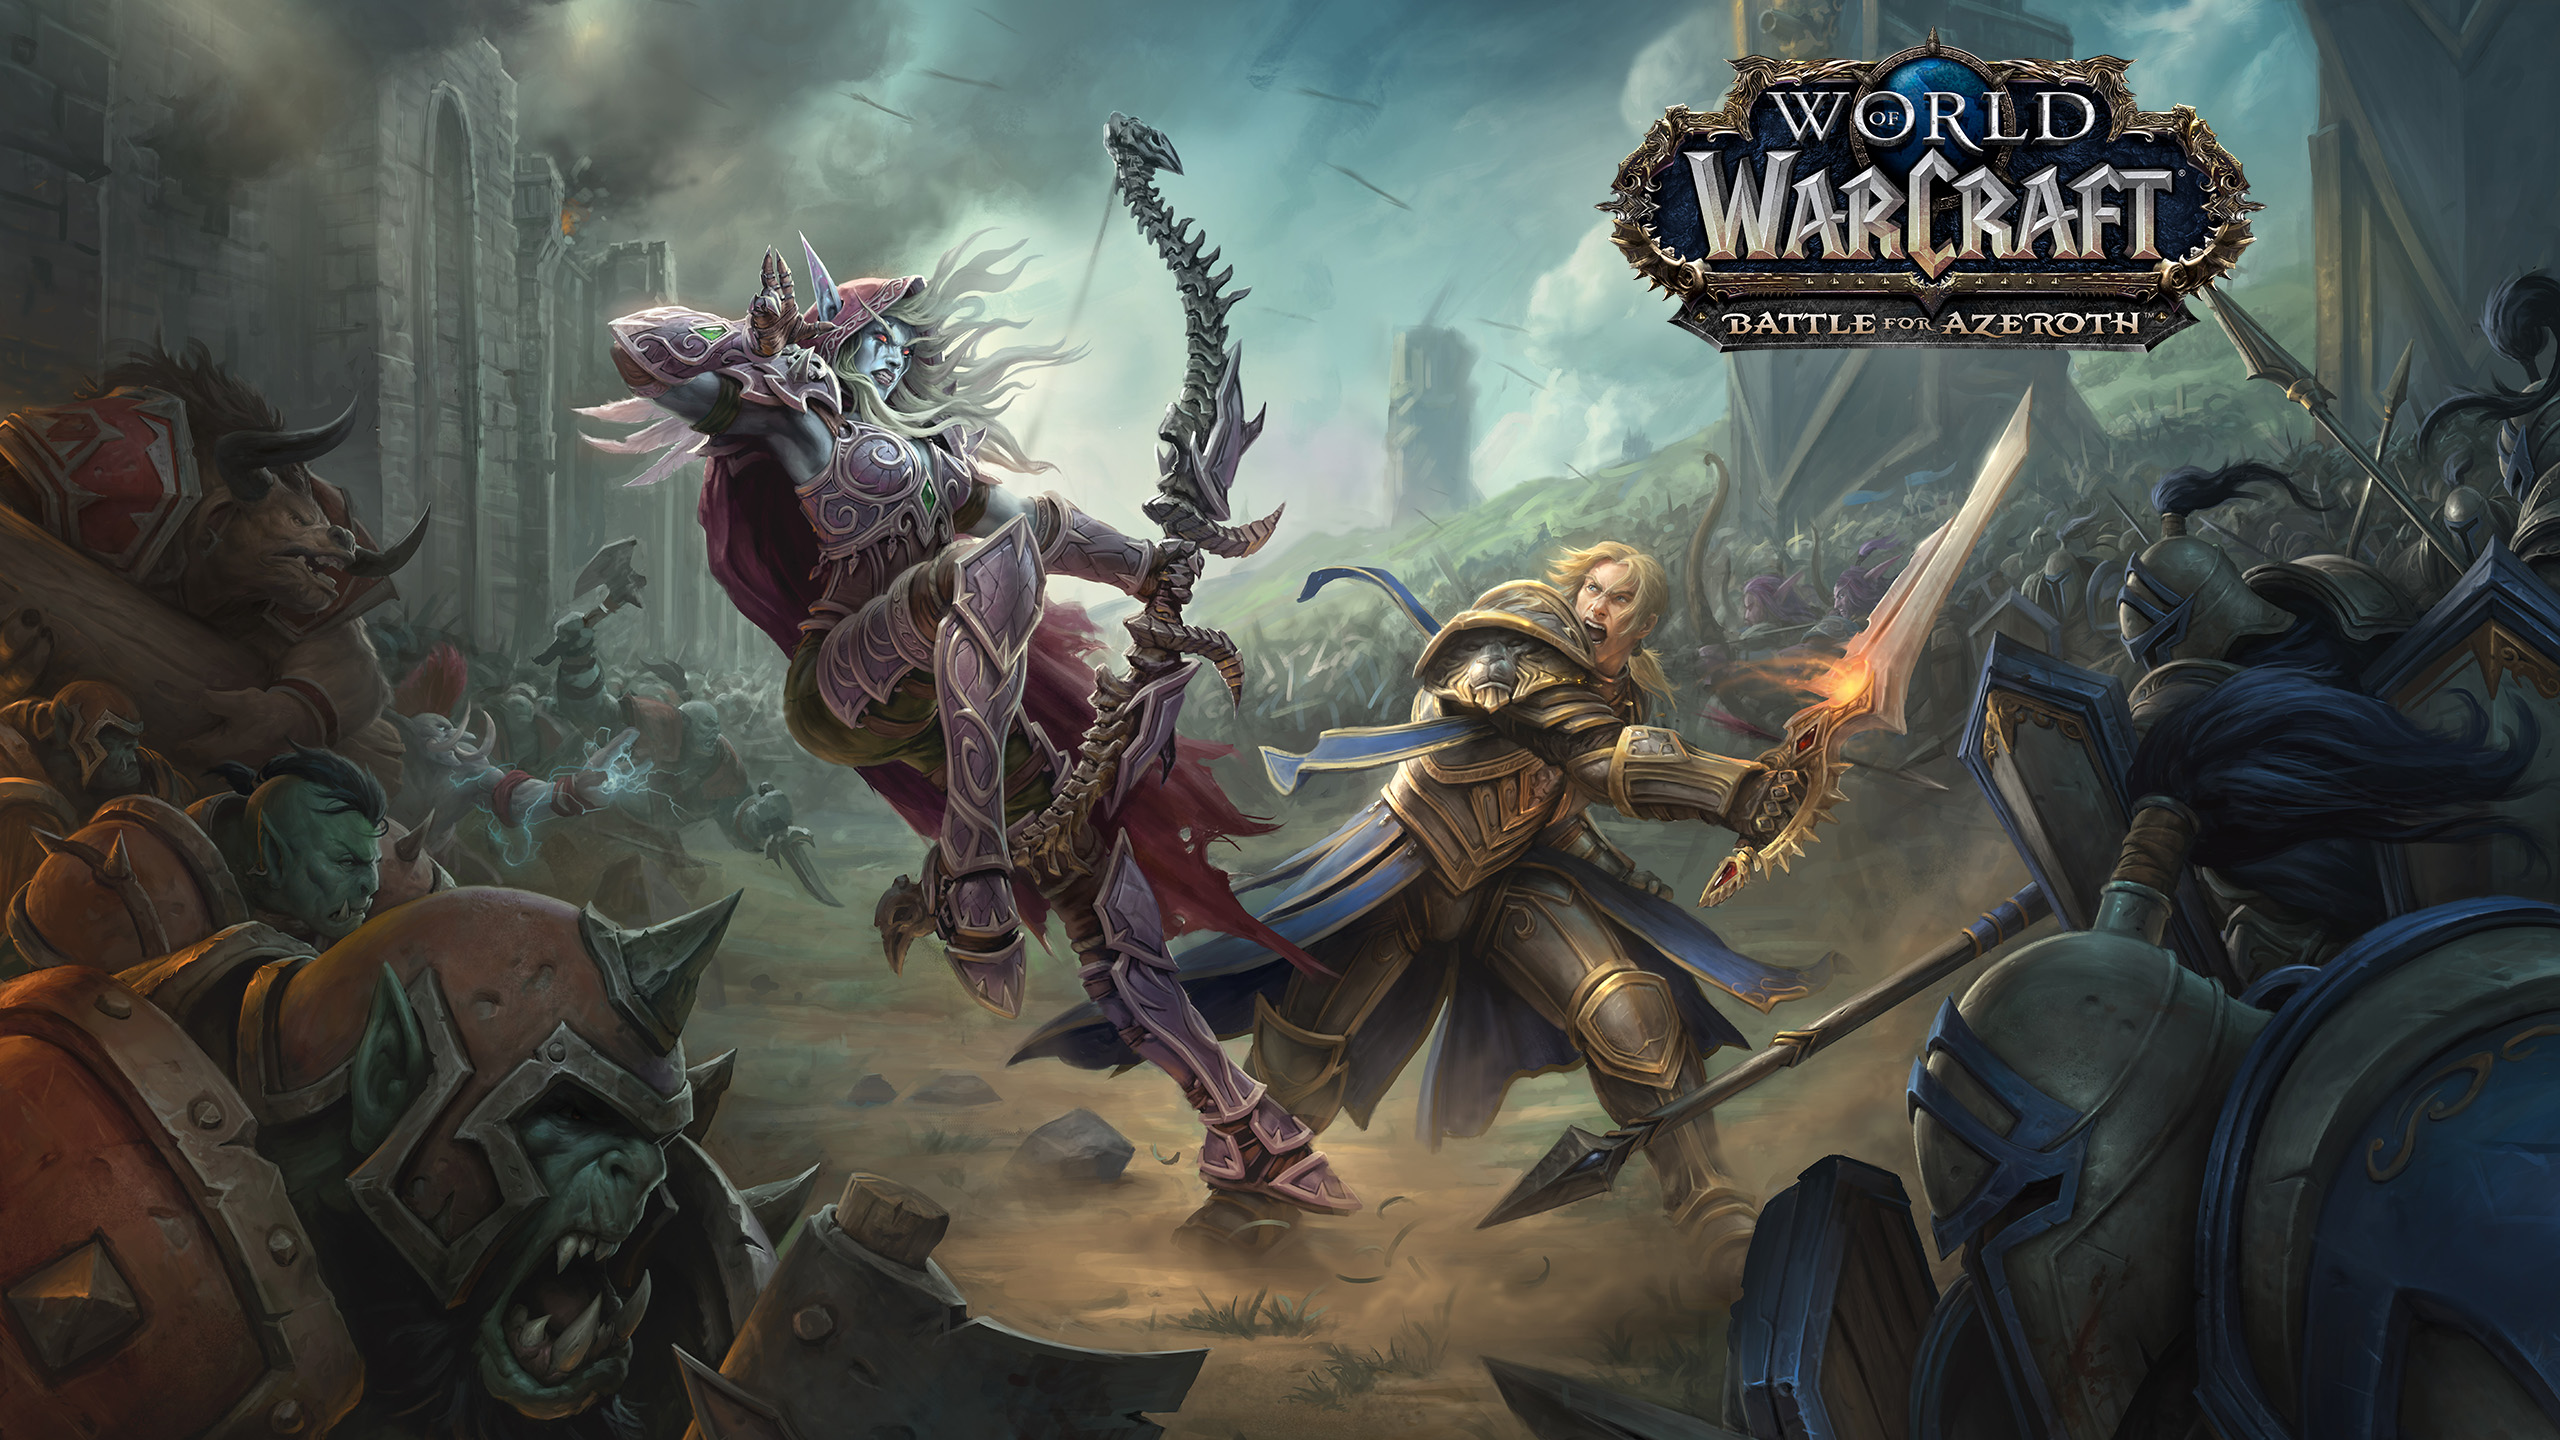 51 World Of Warcraft Battle For Azeroth Hd Wallpapers